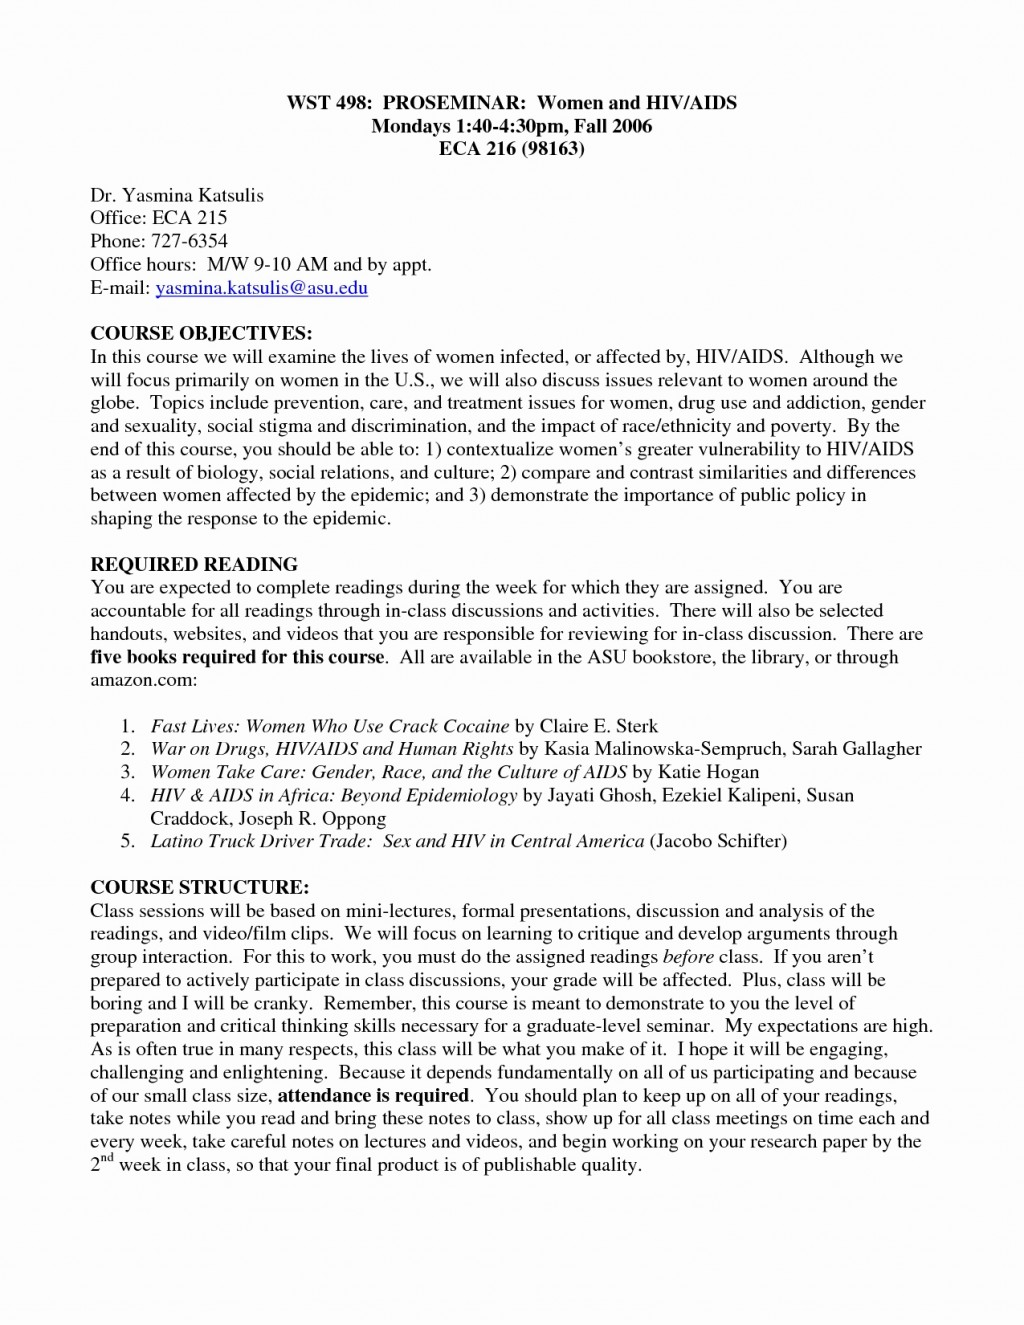 014 Research Paper Example Of Topic Outline Proposal Elegant New Essay Awesome Large